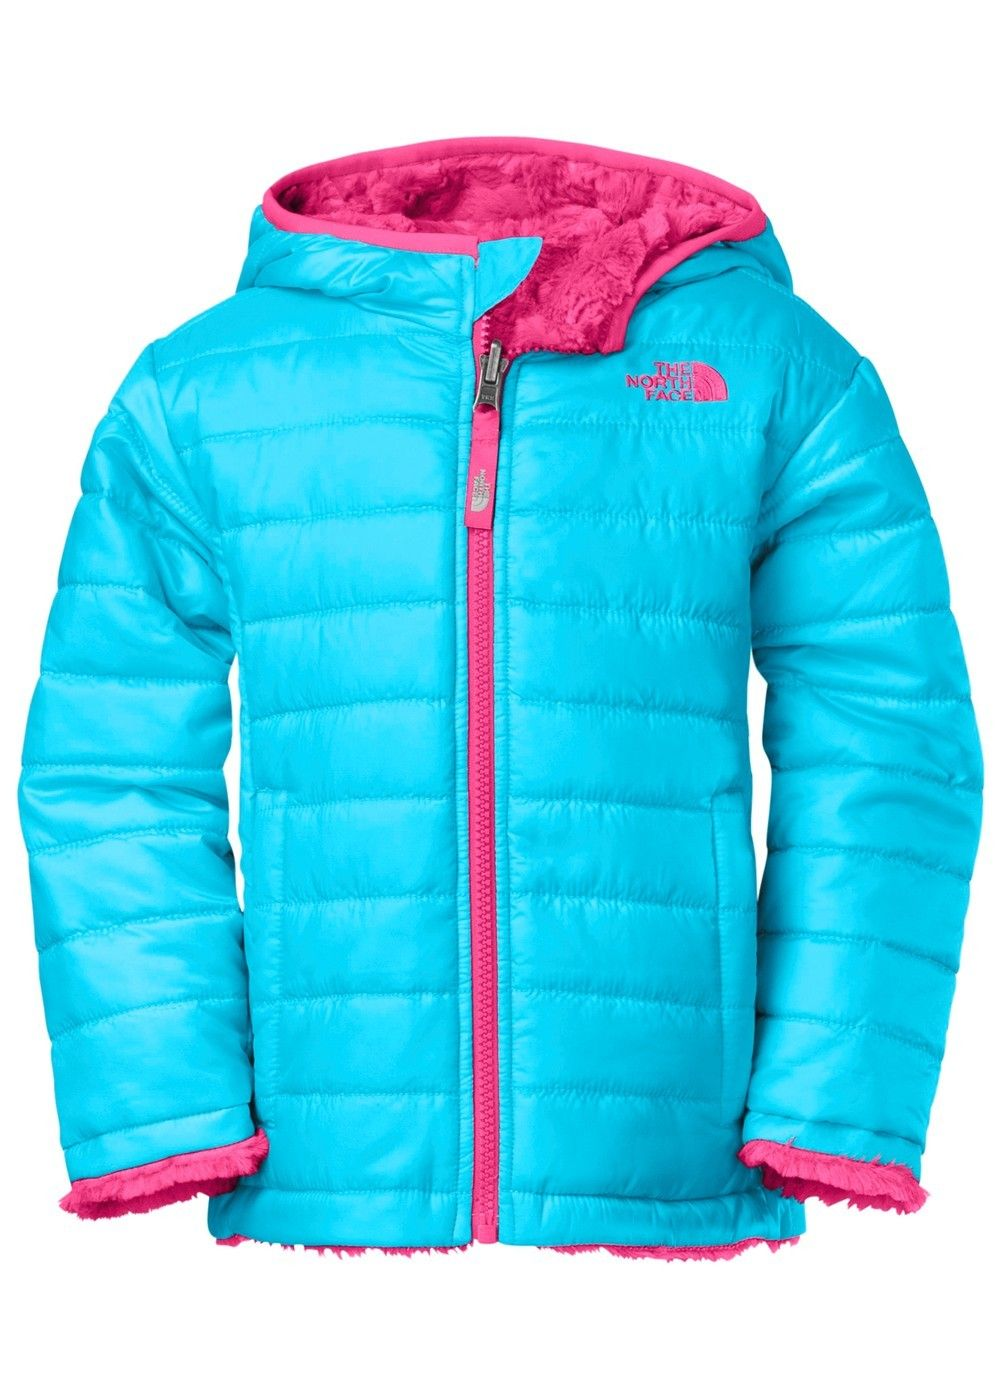 040b9b587b59 The North Face Toddler Reversible Mossbud Swirl Jacket (Turquoise Blue)  Kids (Ages 0-8)